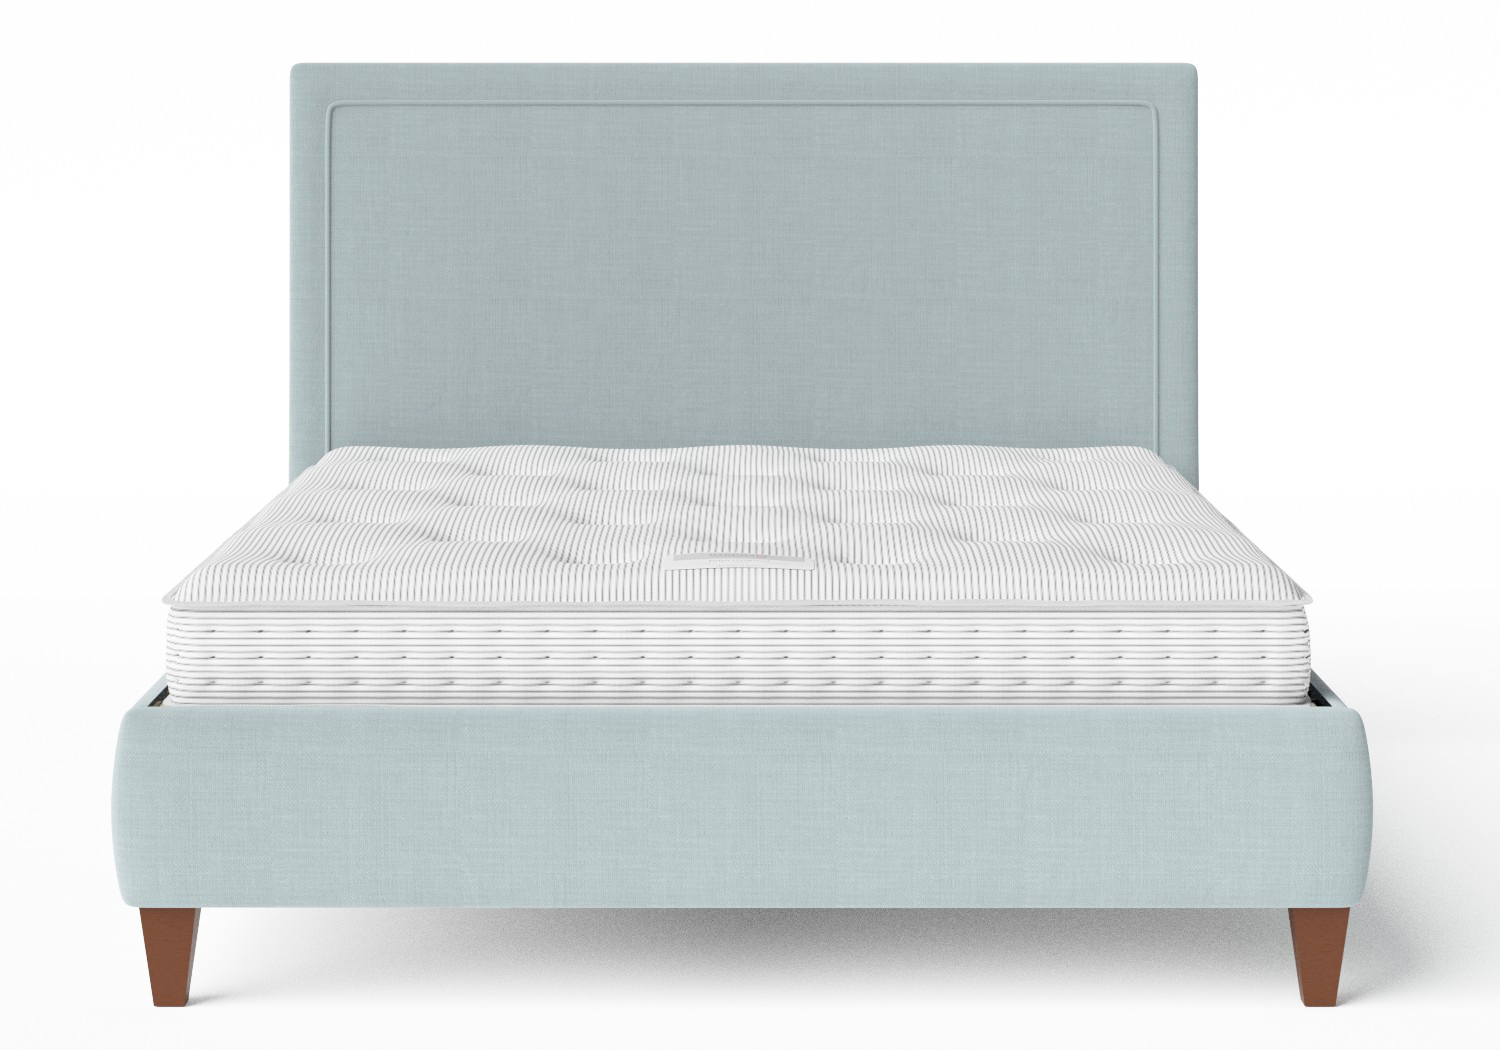 Yushan Upholstered Bed in Wedgewood fabric shown with Juno 1 mattress